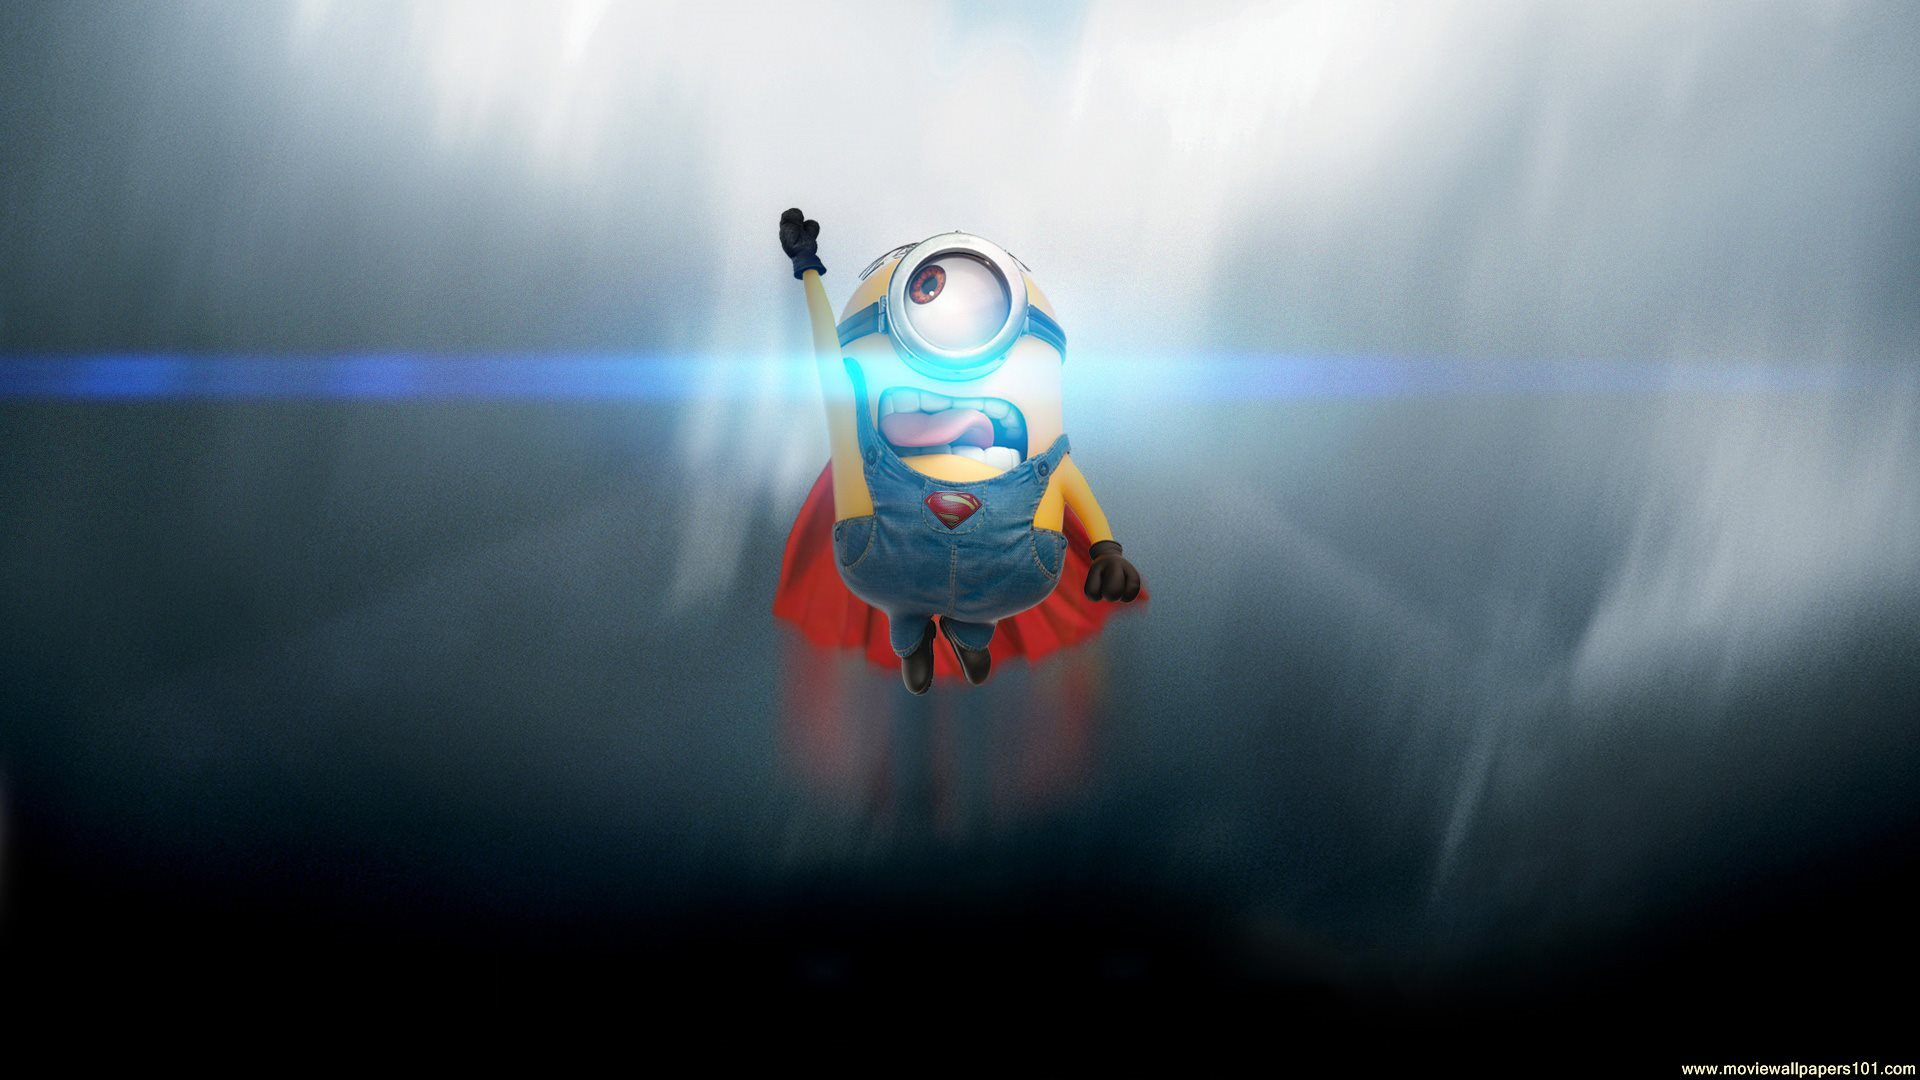 Minions 2015 Movie The Superman HD Wallpaper   StylishHDWallpapers 1920x1080